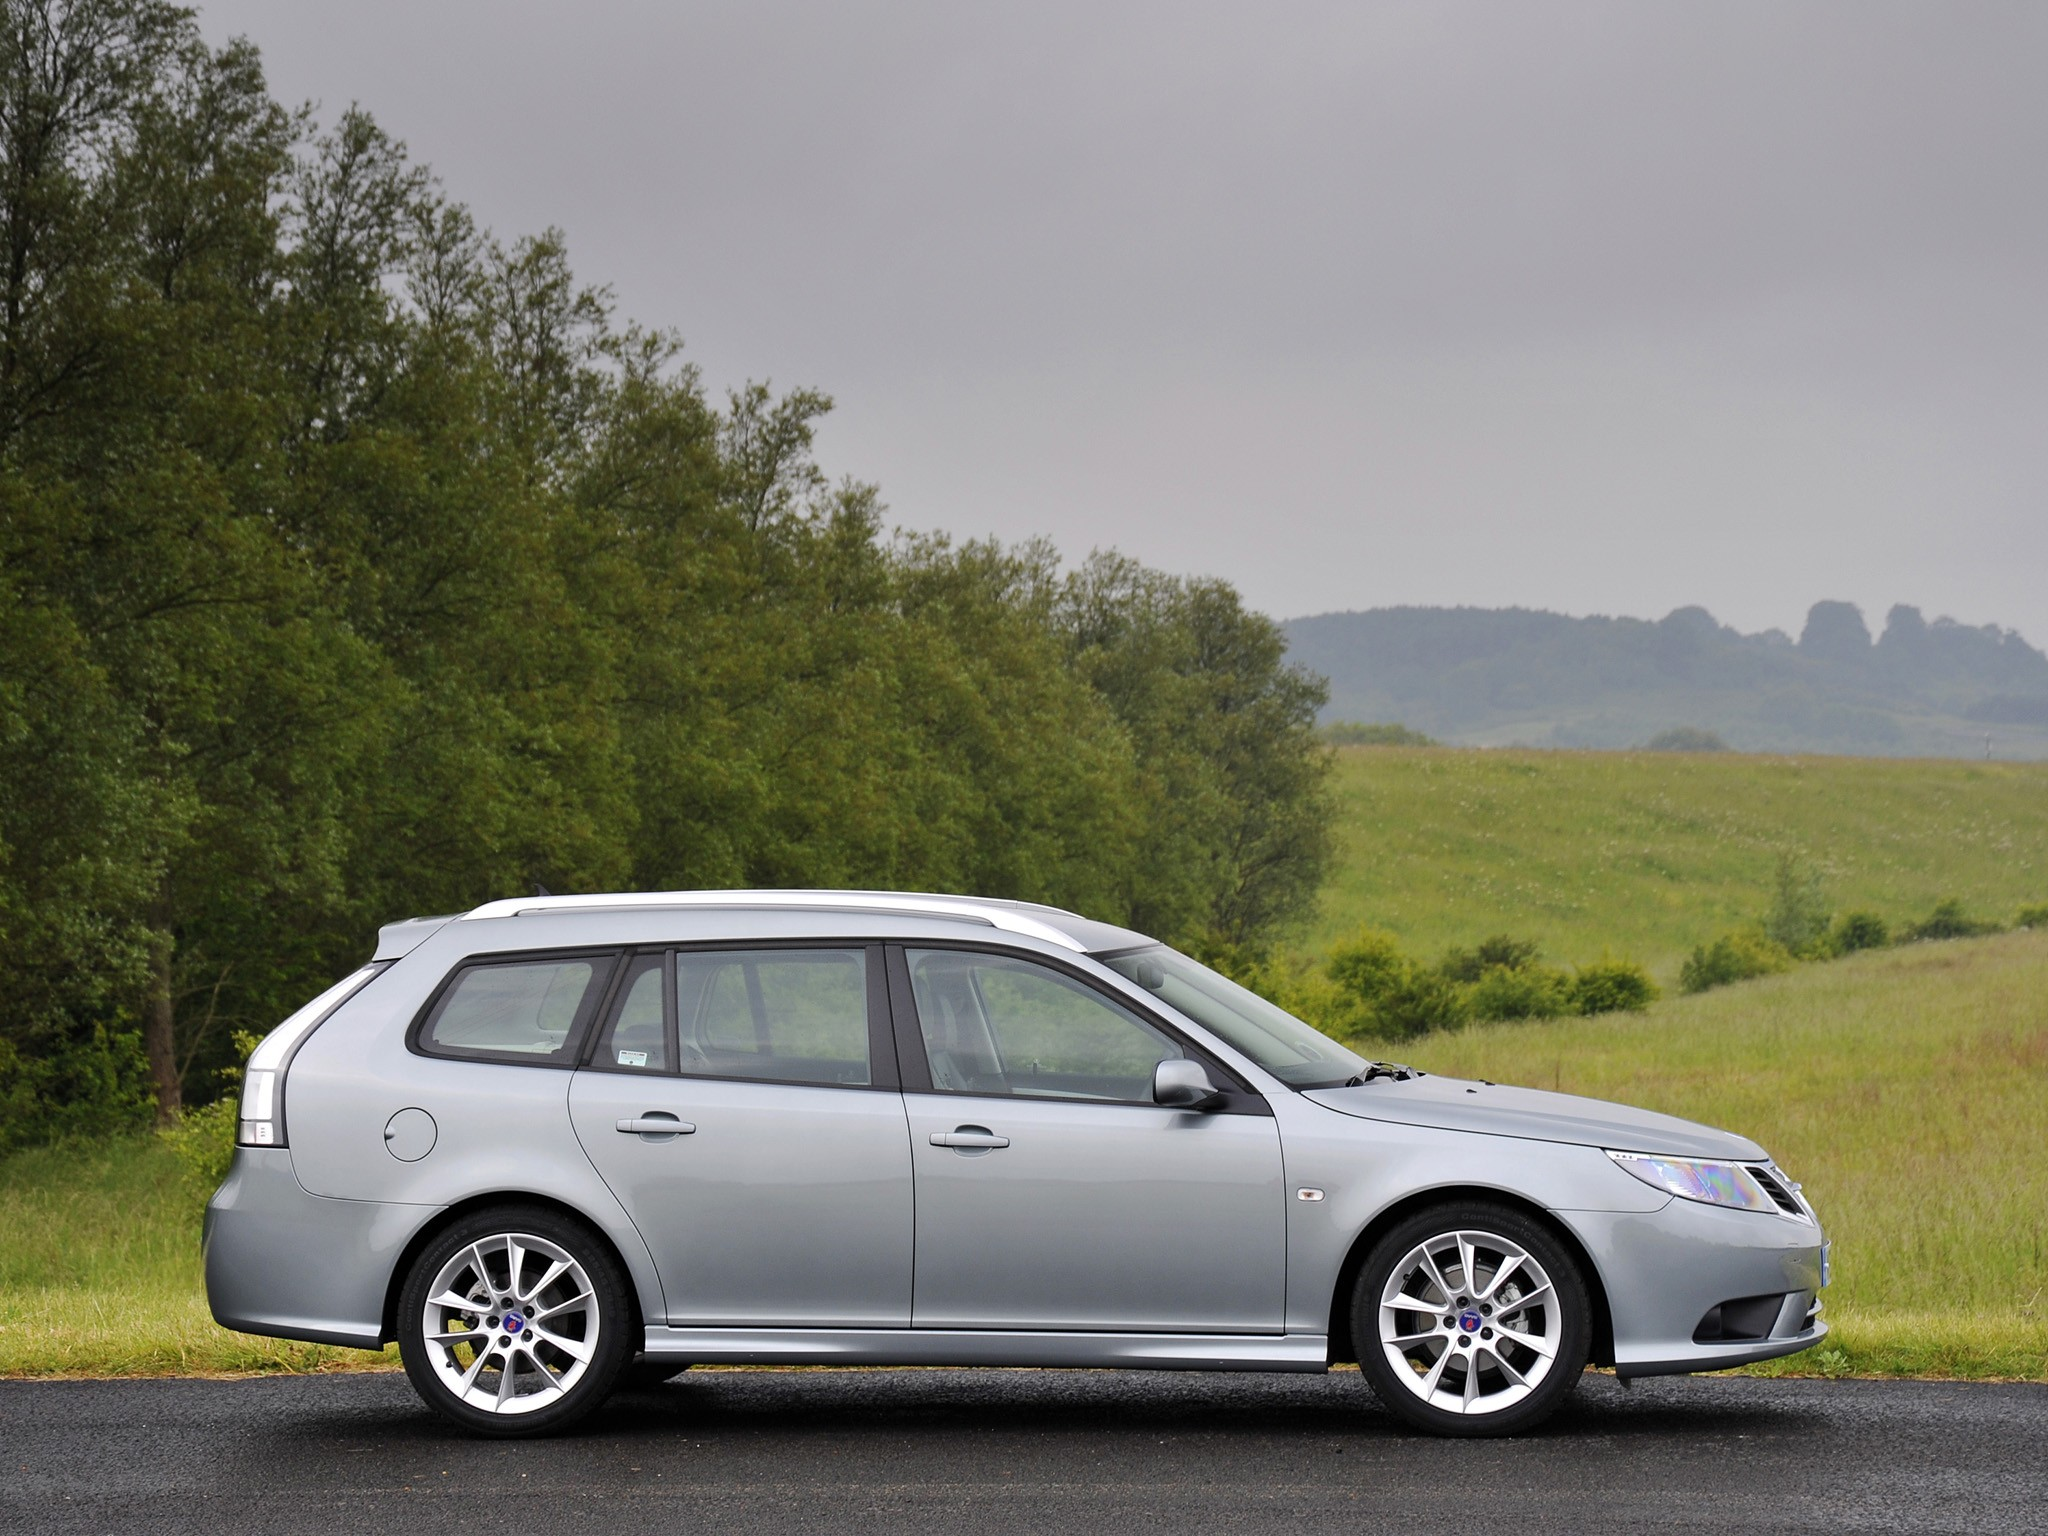 saab 9 3 wagon for sale the wagon. Black Bedroom Furniture Sets. Home Design Ideas